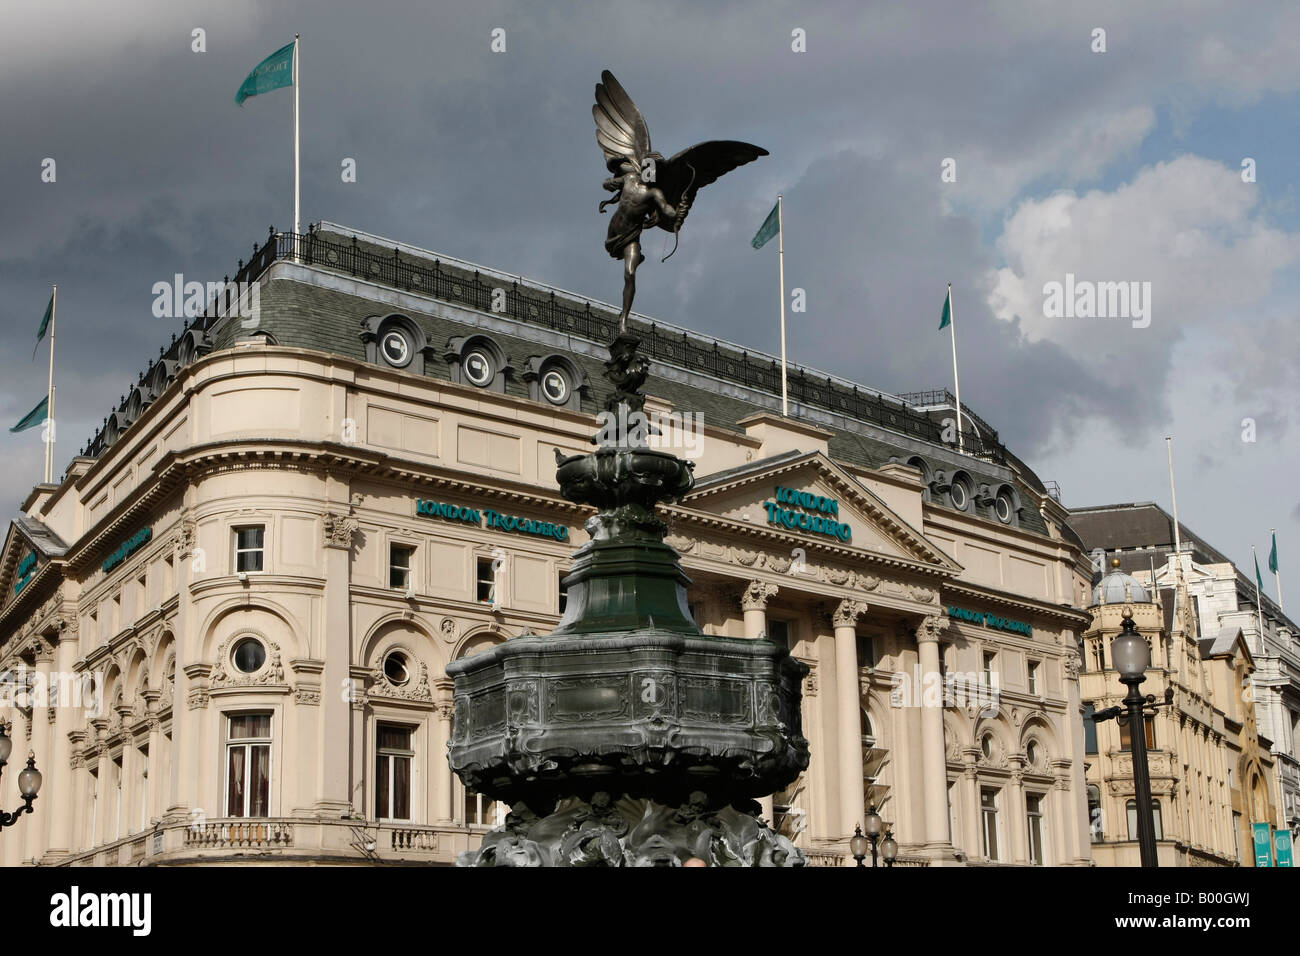 Eros statue in Piccadilly Circus London with the famous TROCADERO CENTRE in background - Stock Image